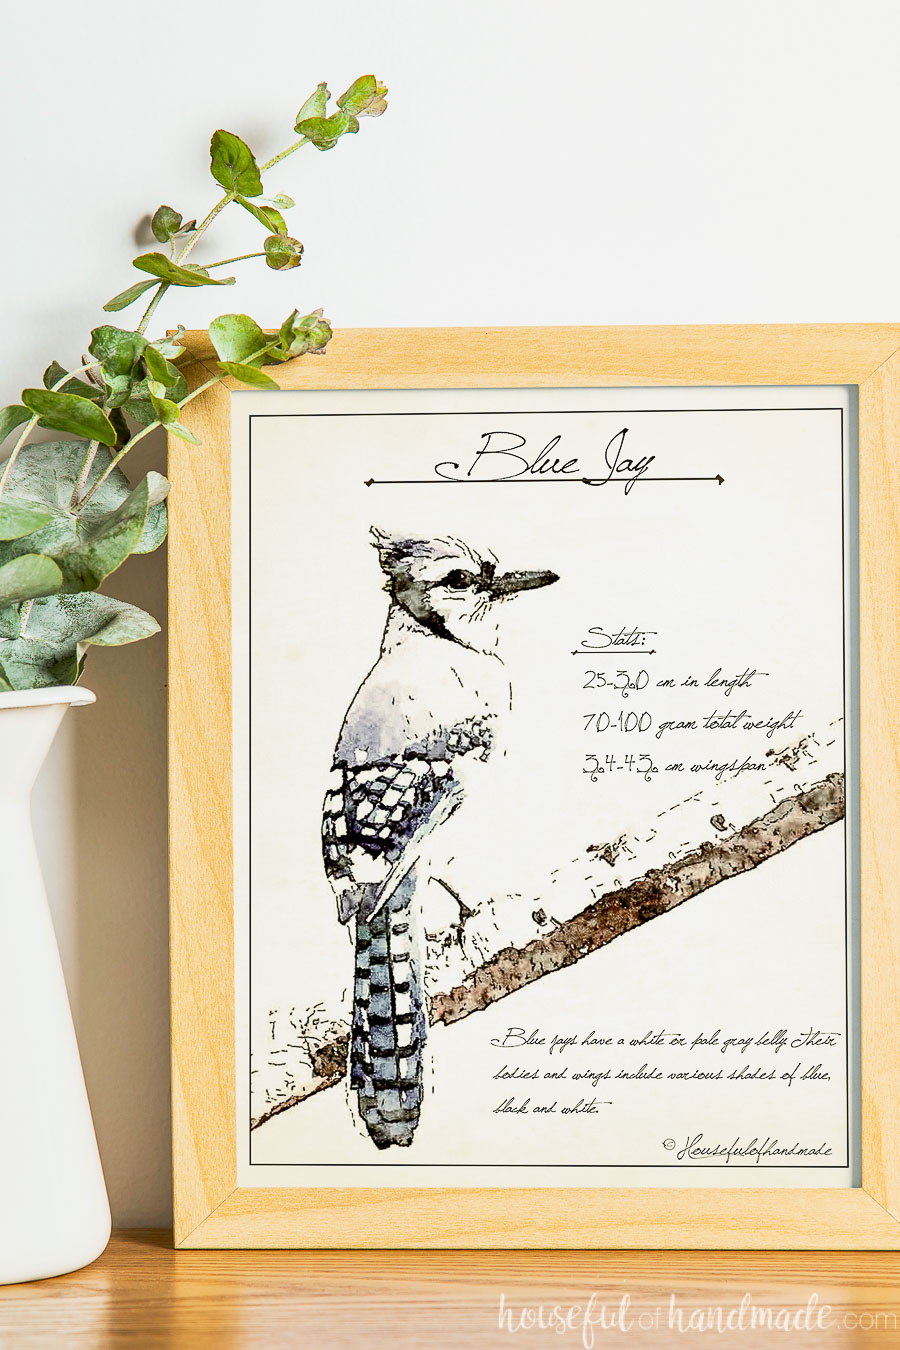 Sketched art of a blue jay with stats about the species in a frame next to a vase.